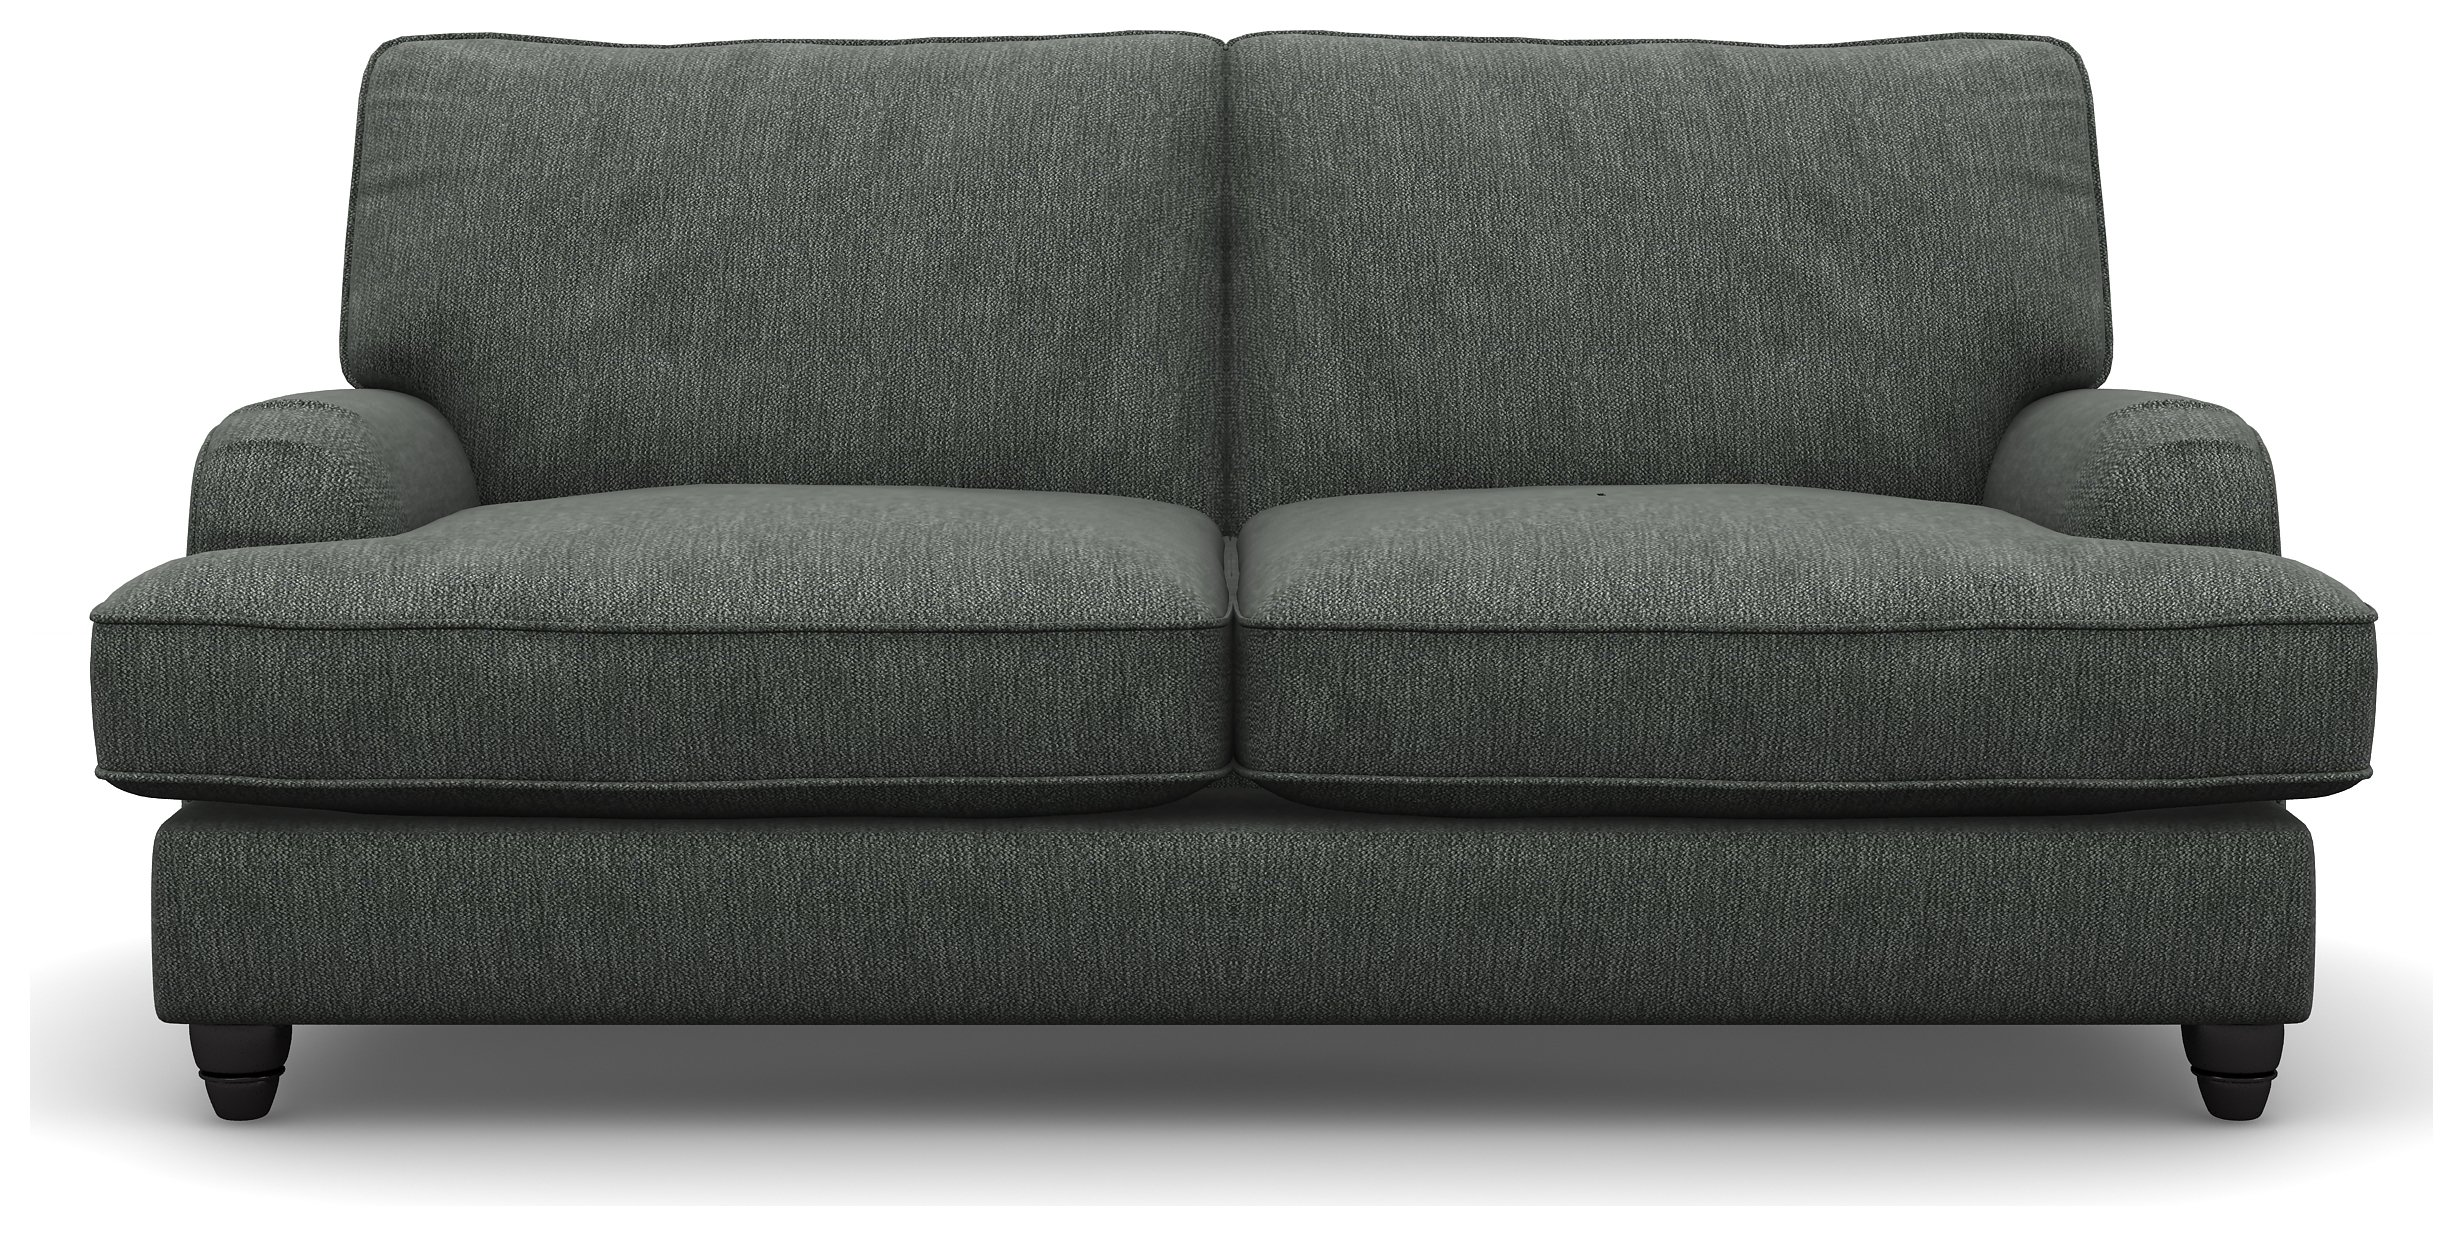 Heart of House Adeline Modern 2 Seater Fabric Sofa - Pewter.